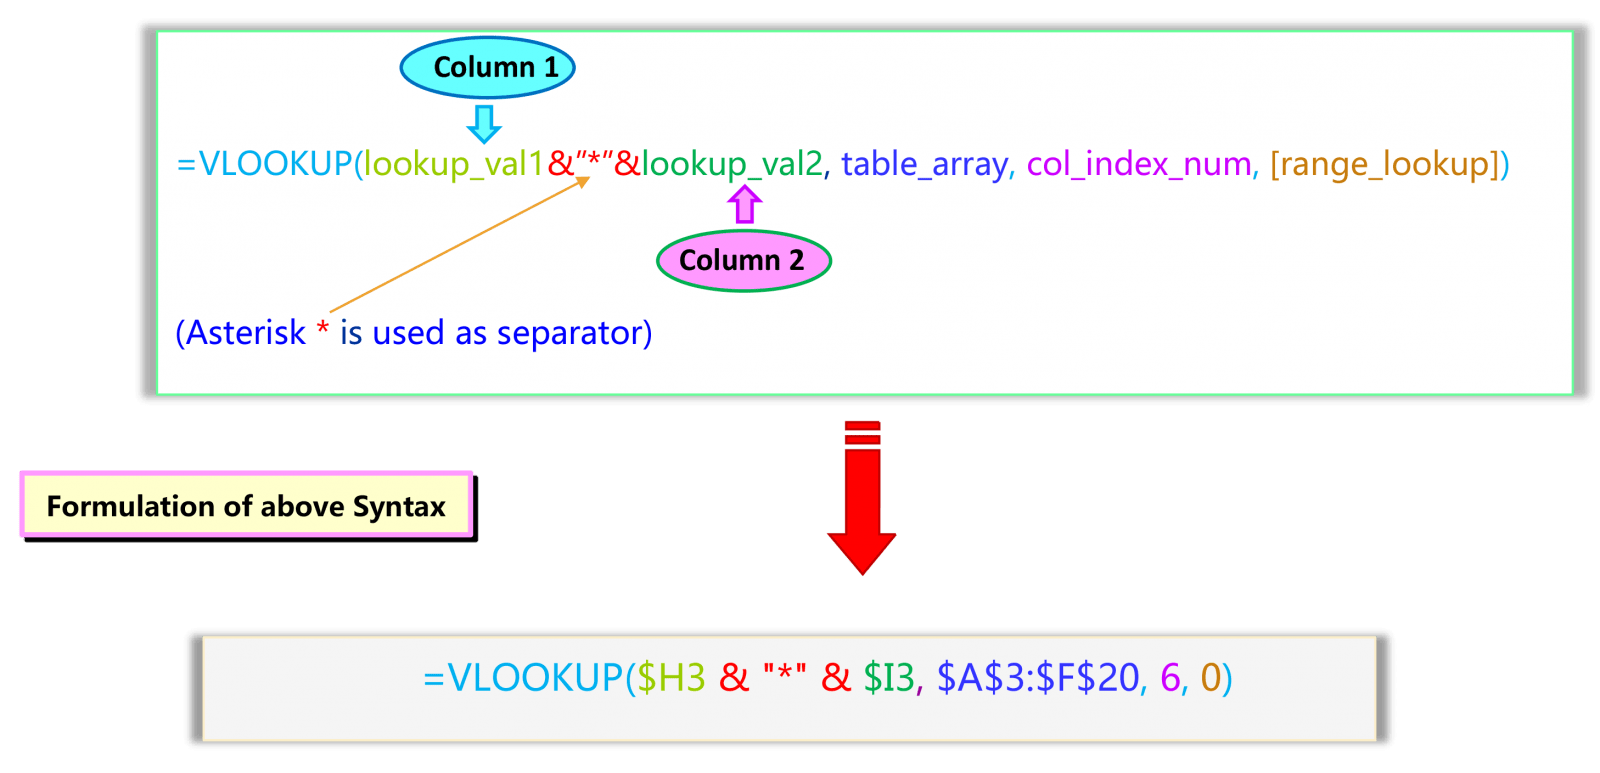 Syntax of VLOOKUP Multiple Criteria in Excel with VLOOKUP & CONCATENATE functions